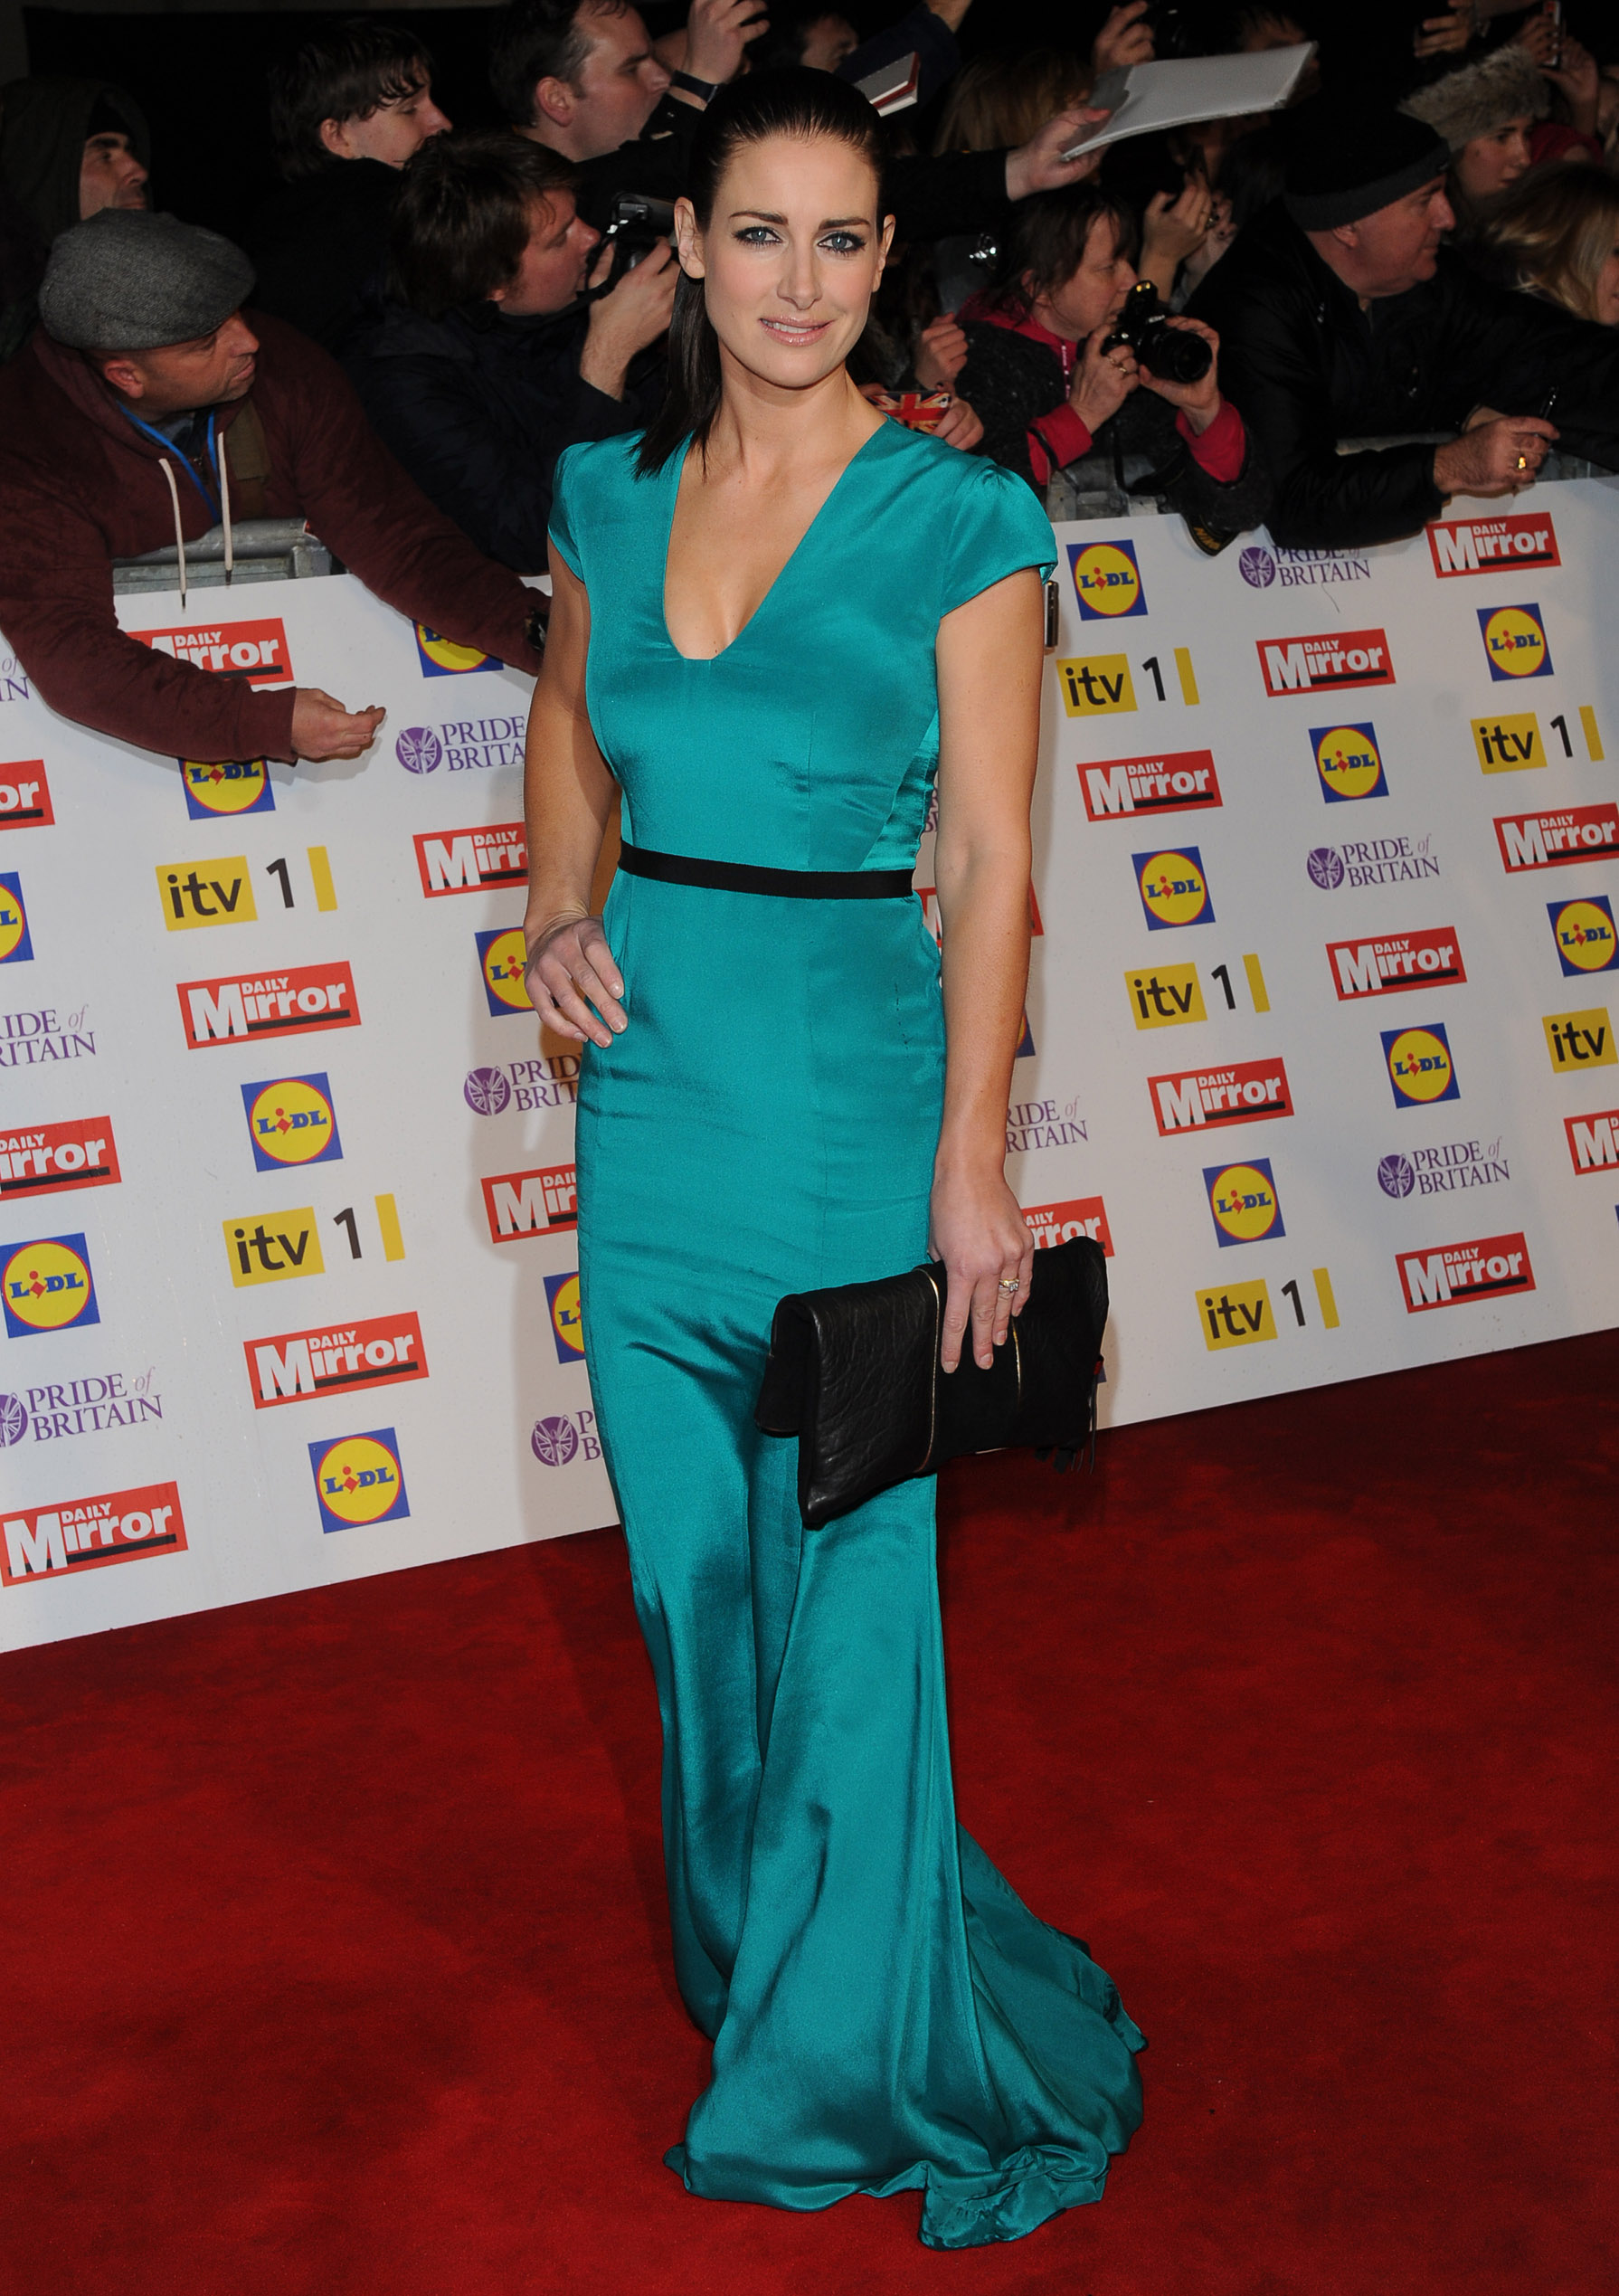 Kirsty Gallacher 2012 : Kirsty Gallacher cleavage-07